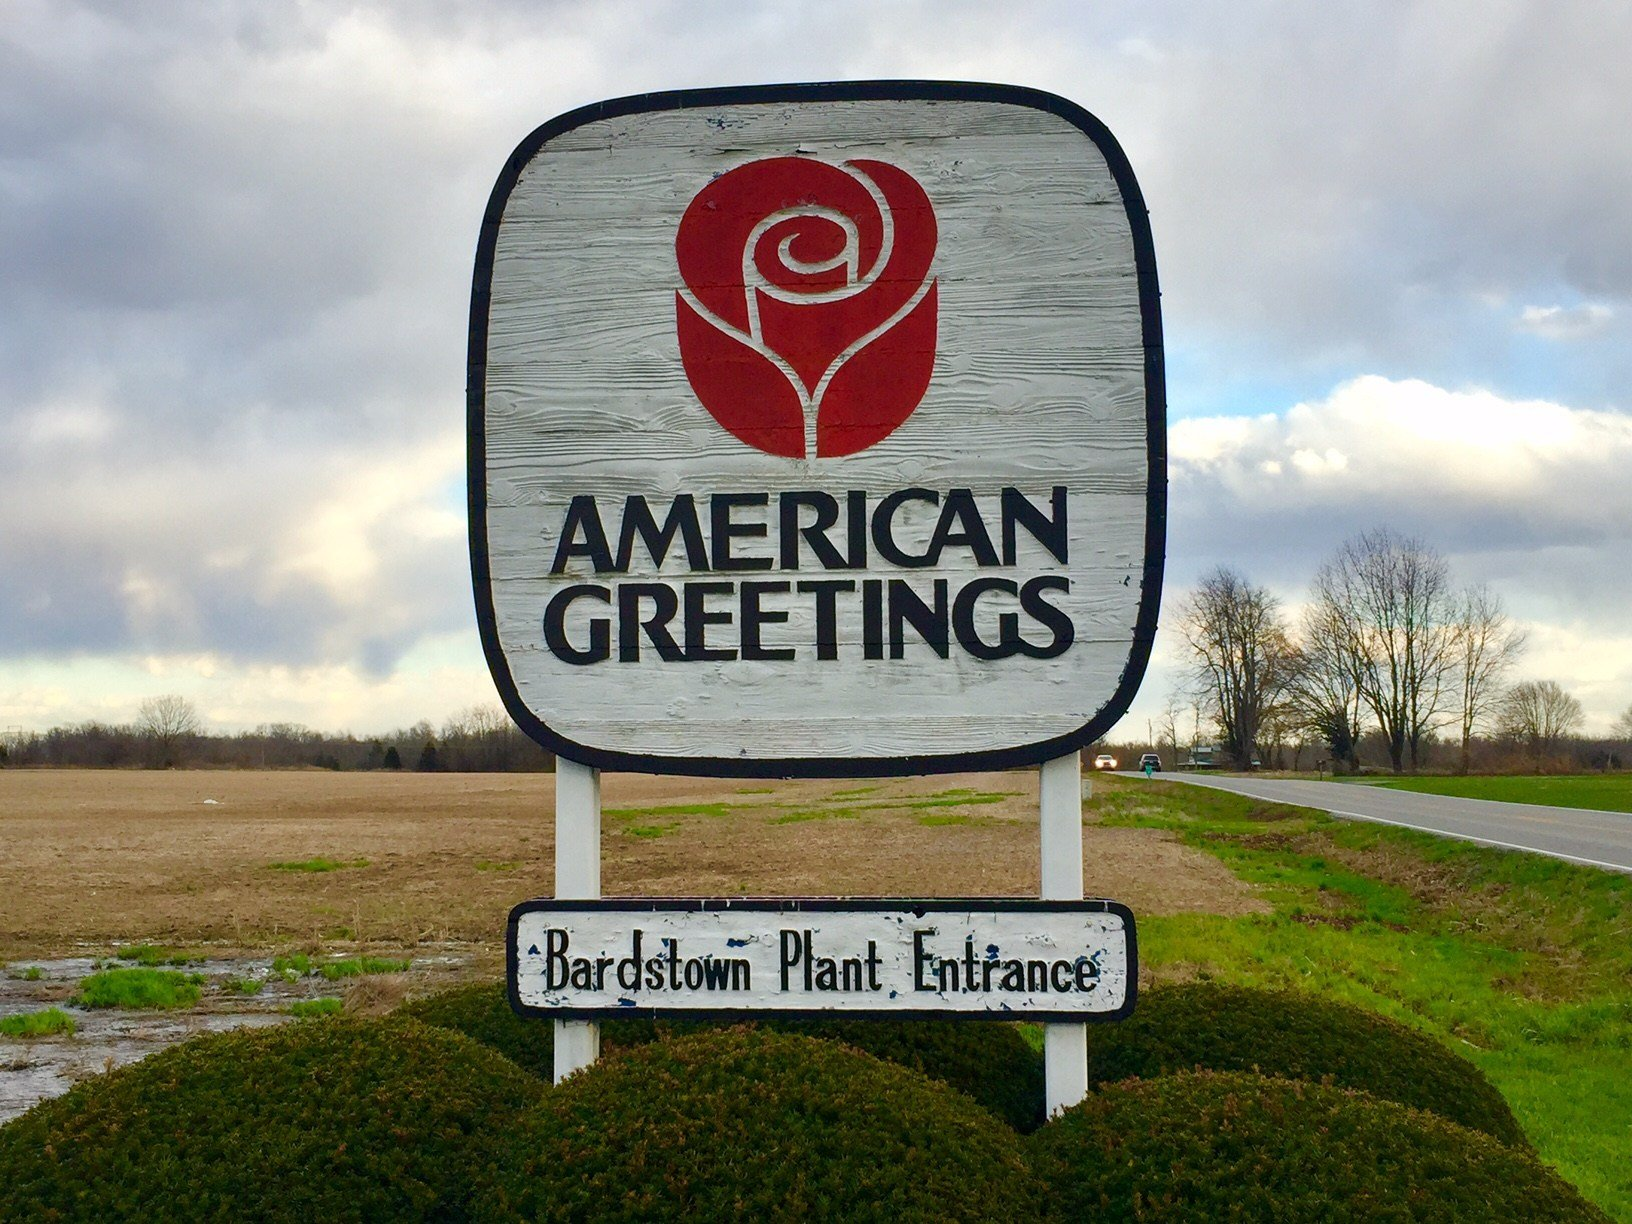 American greetings in bardstown to close laying off nearly 450 american greetings in bardstown to close laying off nearly 450 wdrb 41 louisville news m4hsunfo Choice Image